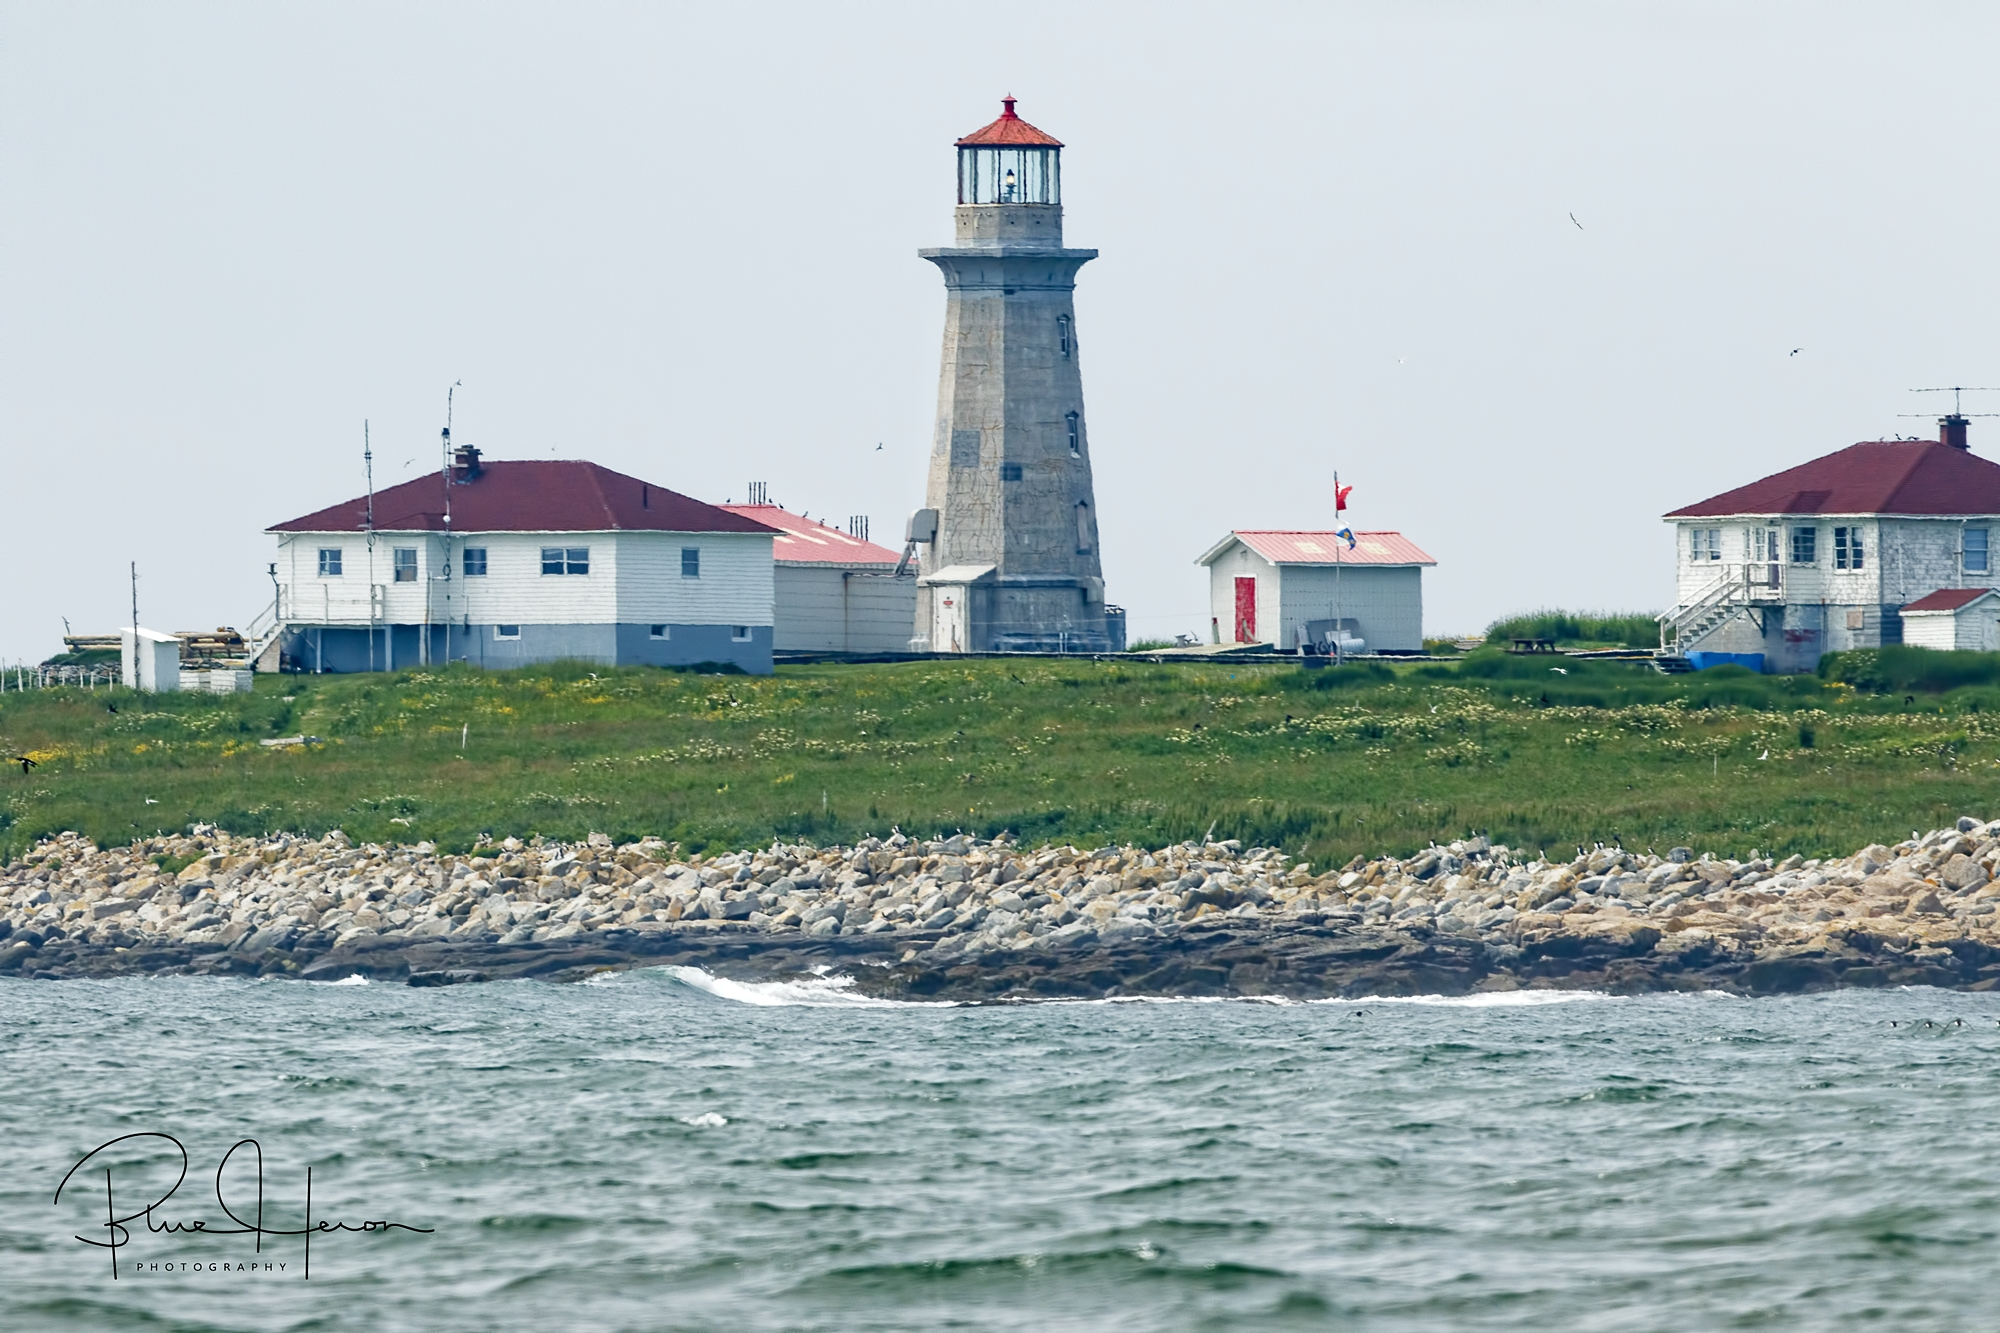 Machias Seal Island, still disputed and manned by a Canadian Lighthouse crew is home to thousands of breeding Alcids which include Murres, Razorbills, and the Atlantic Puffin.